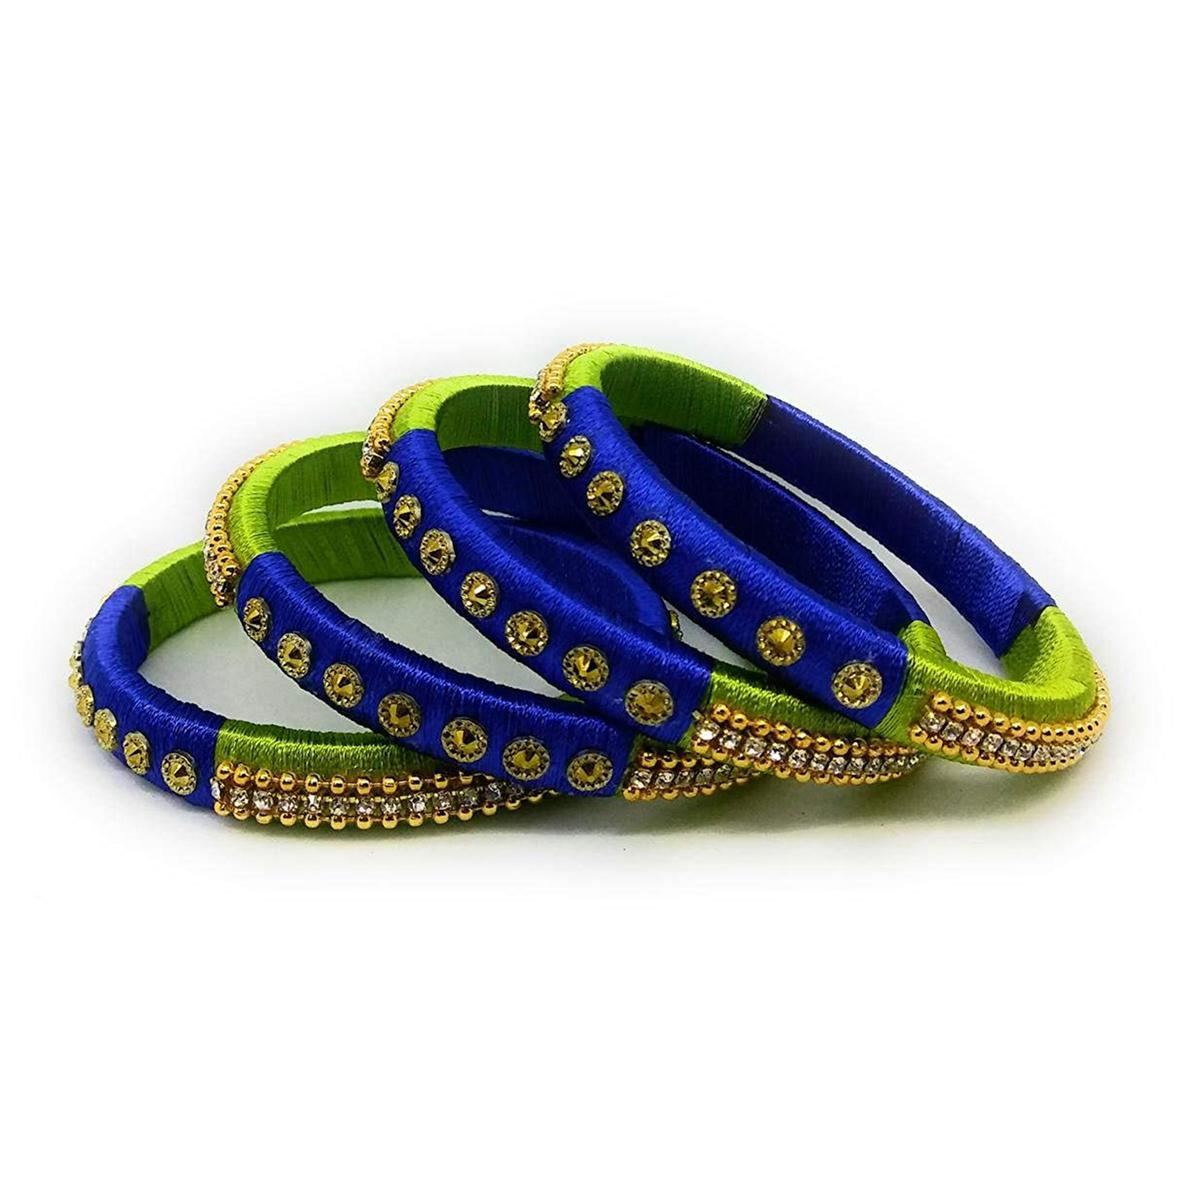 Ravishing Green & Blue Colored Silk Tread & Stone Work Bangles - Set Of 4